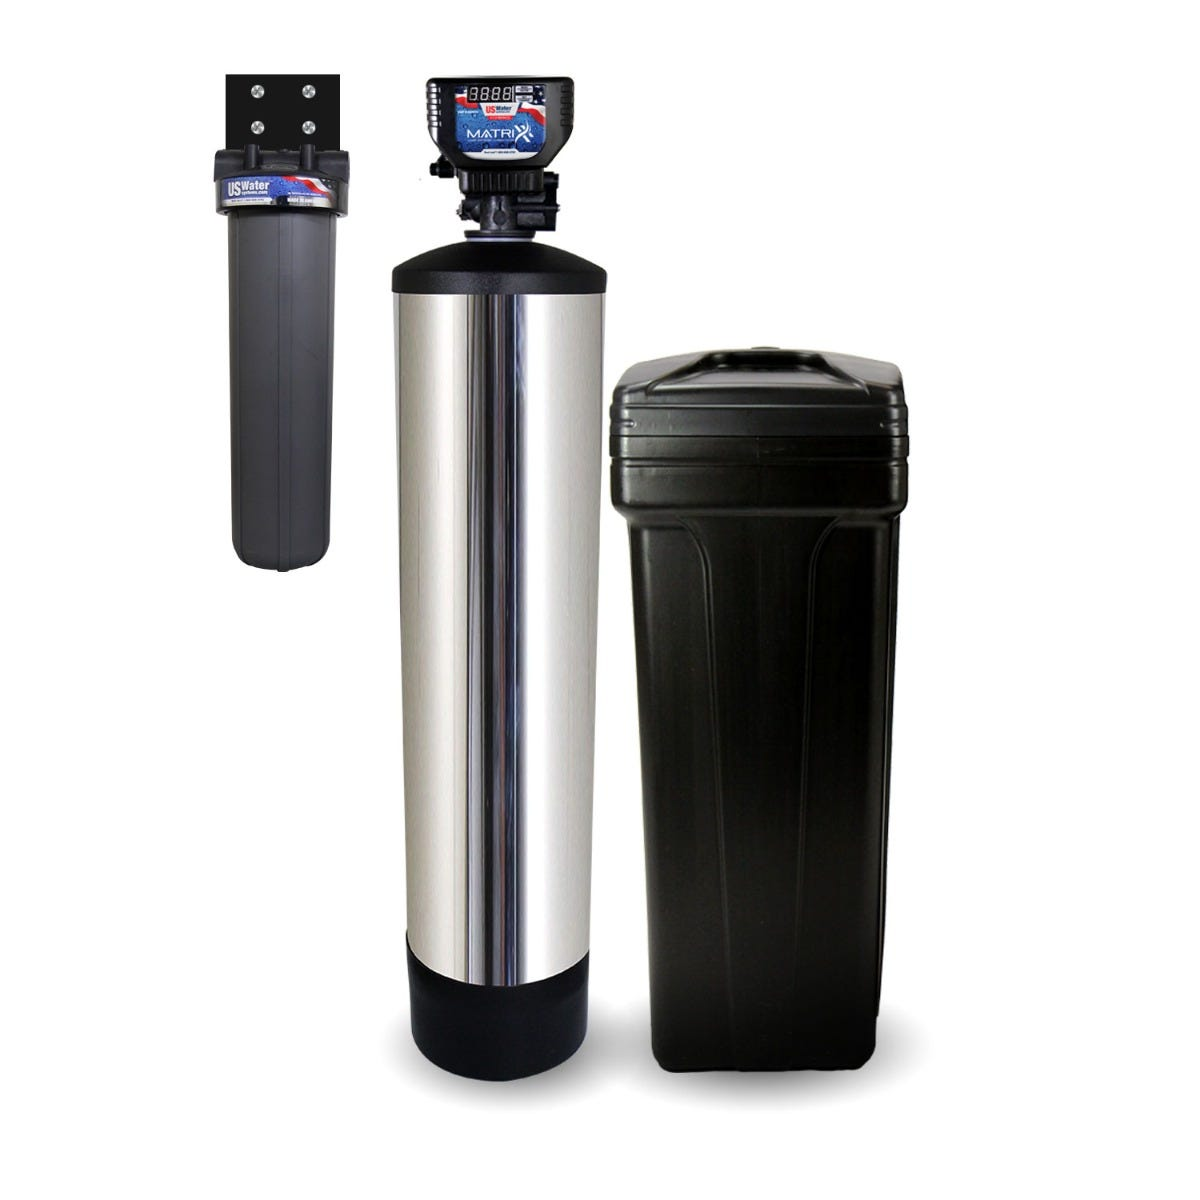 Fusion Nlt Combo Commercial Grade Metered Water Softener